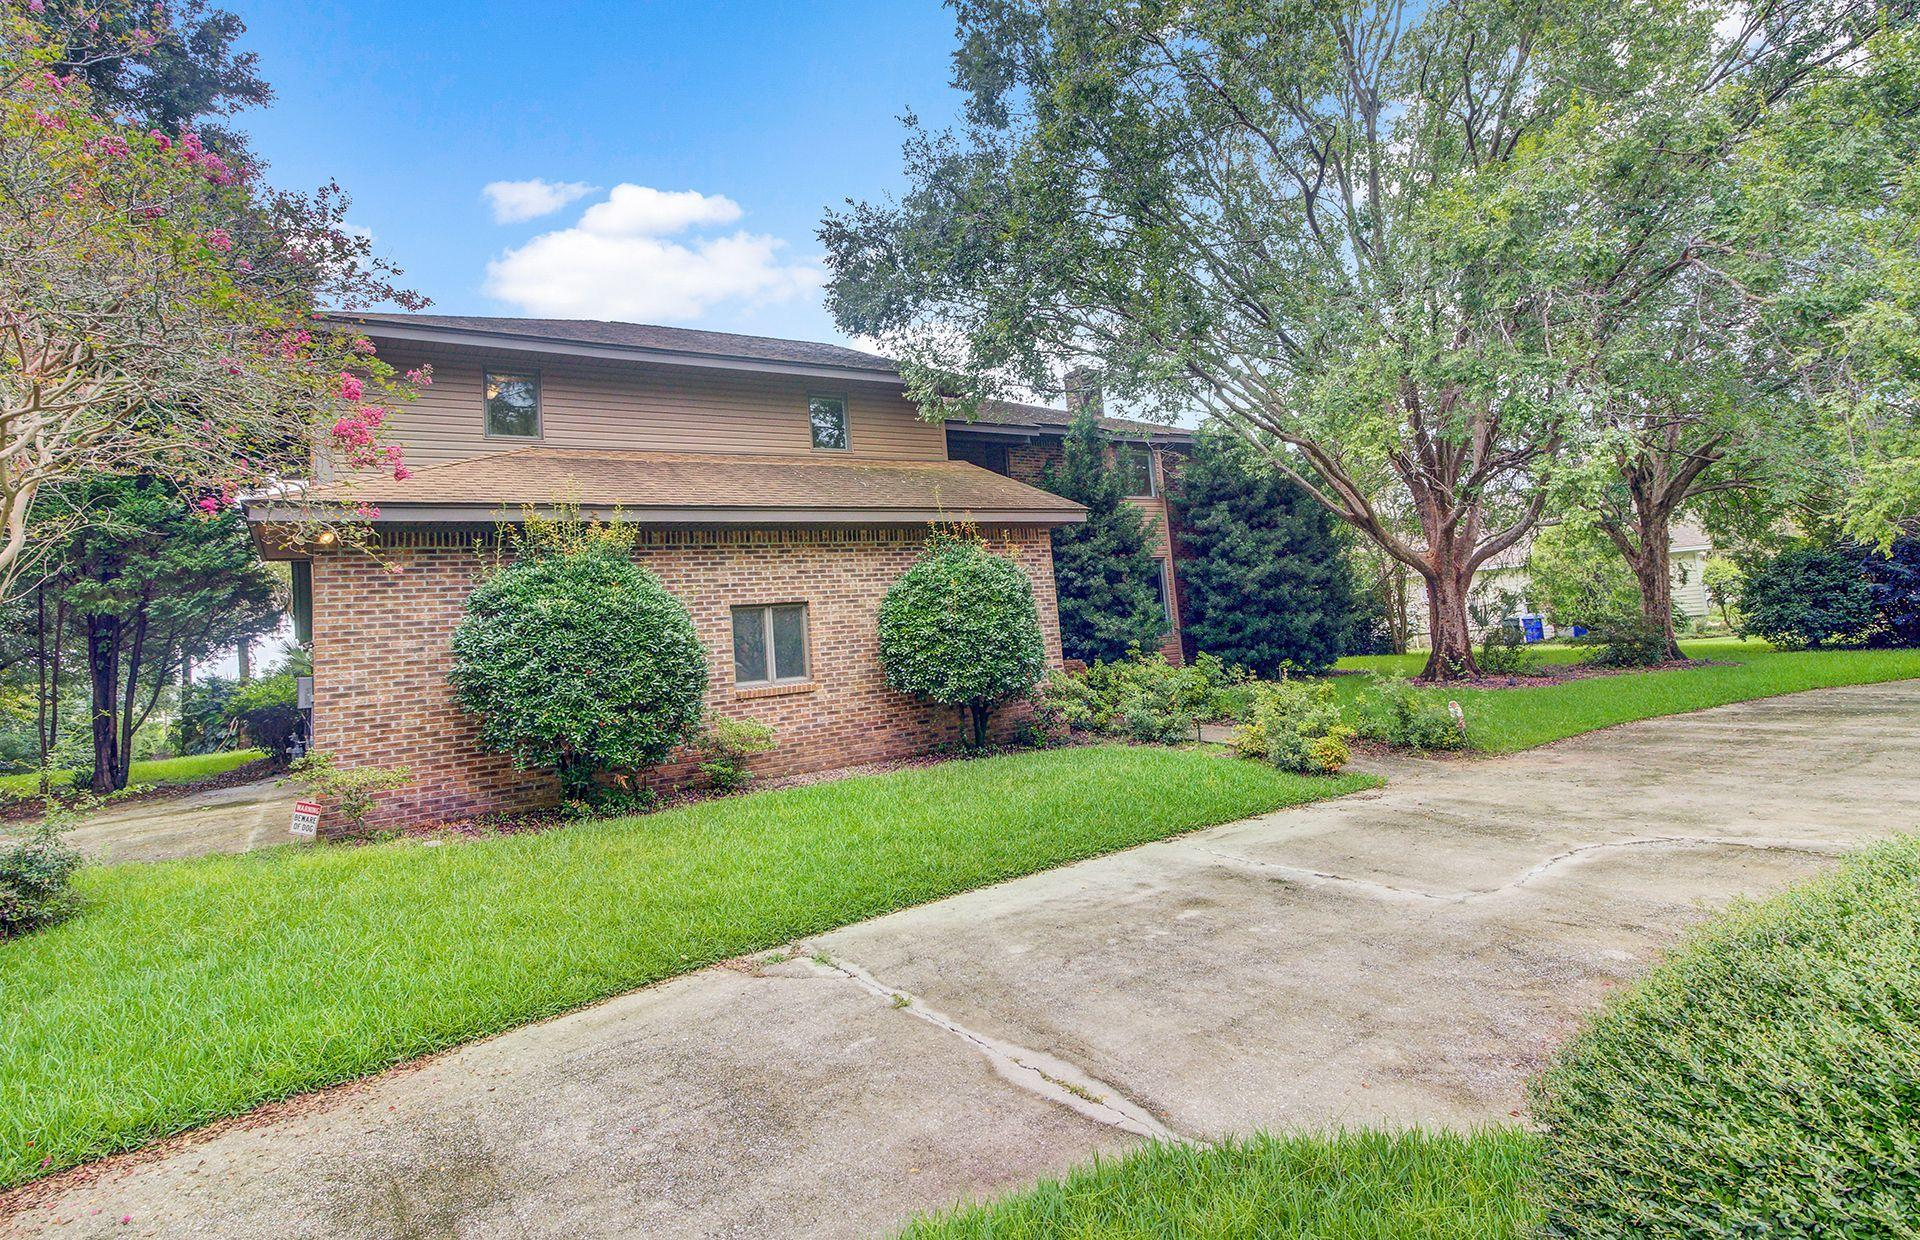 Rivers Point Homes For Sale - 141 Oyster Point, Charleston, SC - 6